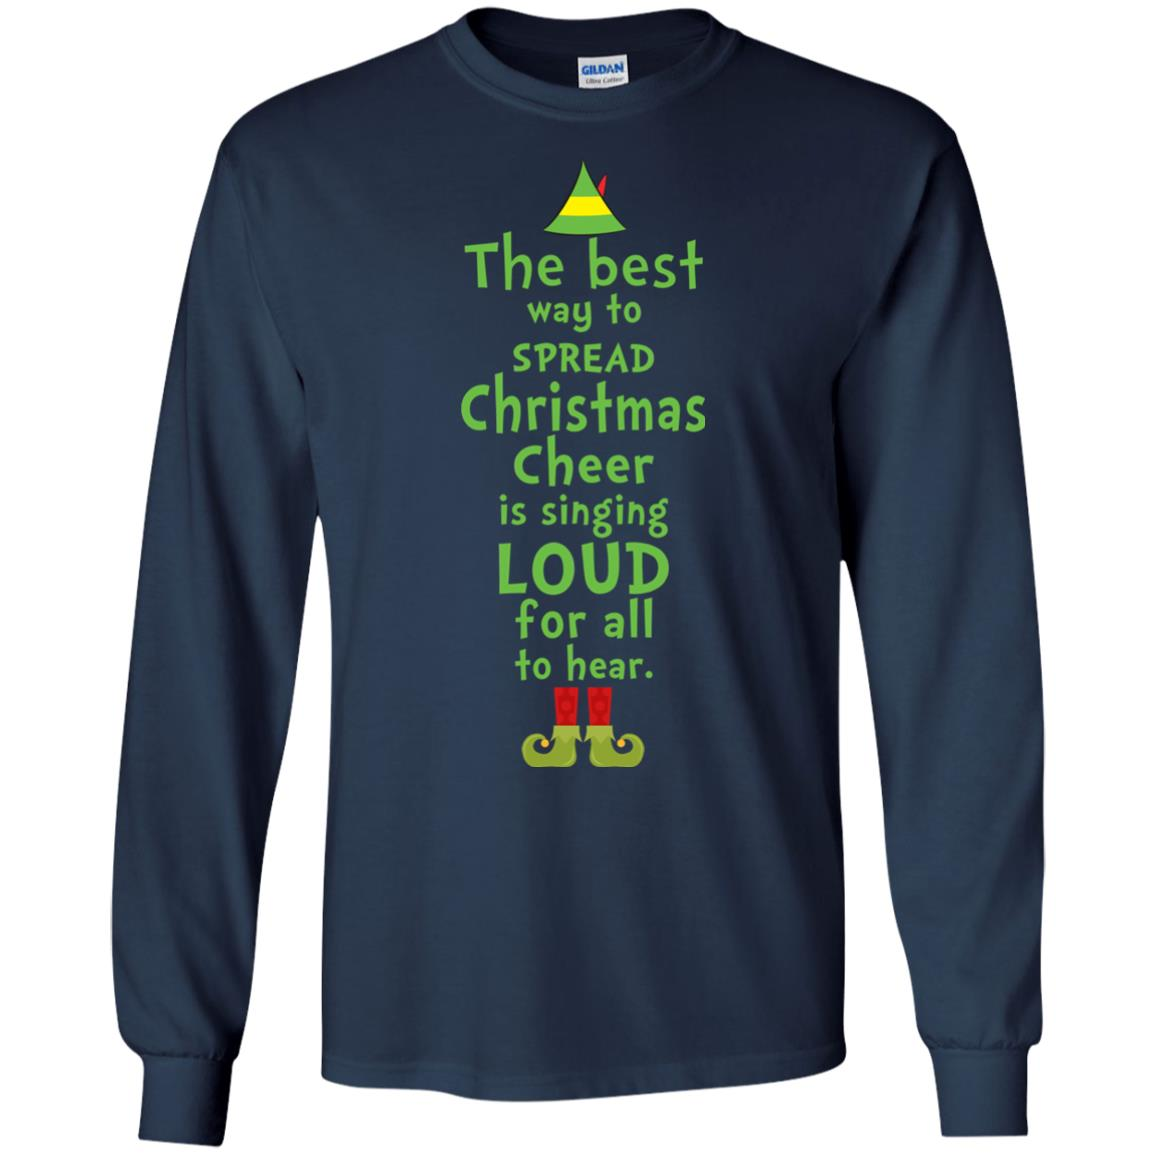 image 2456 - The best way to spread Christmas cheer is singing loud for all to hear Sweater, Shirt